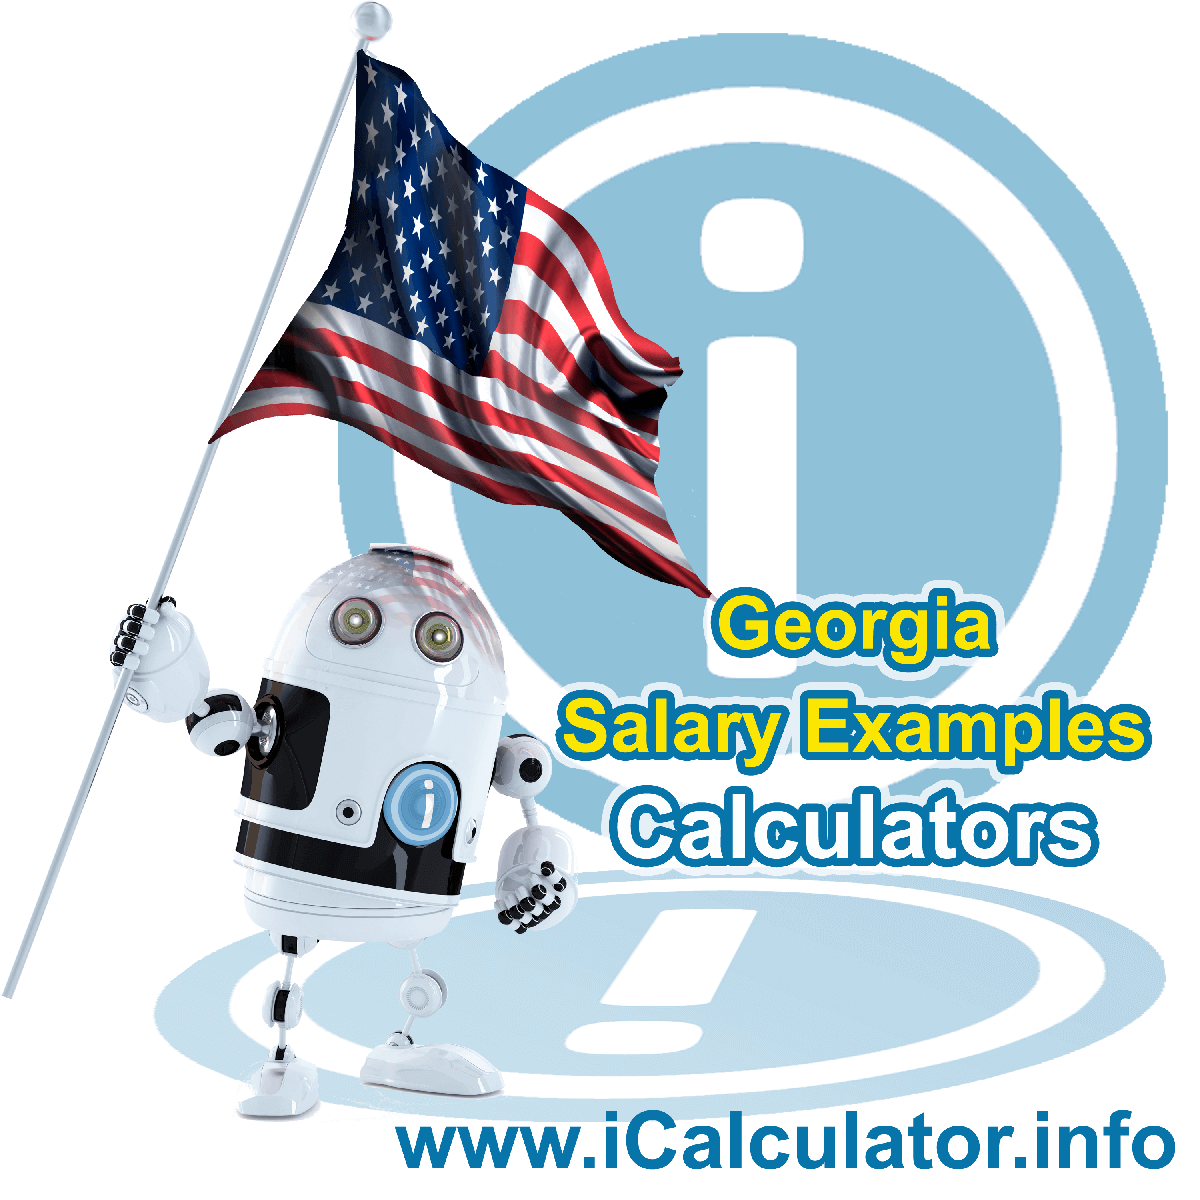 Georgia Salary Example for $270.00 in 2020 | iCalculator | $270.00 salary example for employee and employer paying Georgia State tincome taxes. Detailed salary after tax calculation including Georgia State Tax, Federal State Tax, Medicare Deductions, Social Security, Capital Gains and other income tax and salary deductions complete with supporting Georgia state tax tables